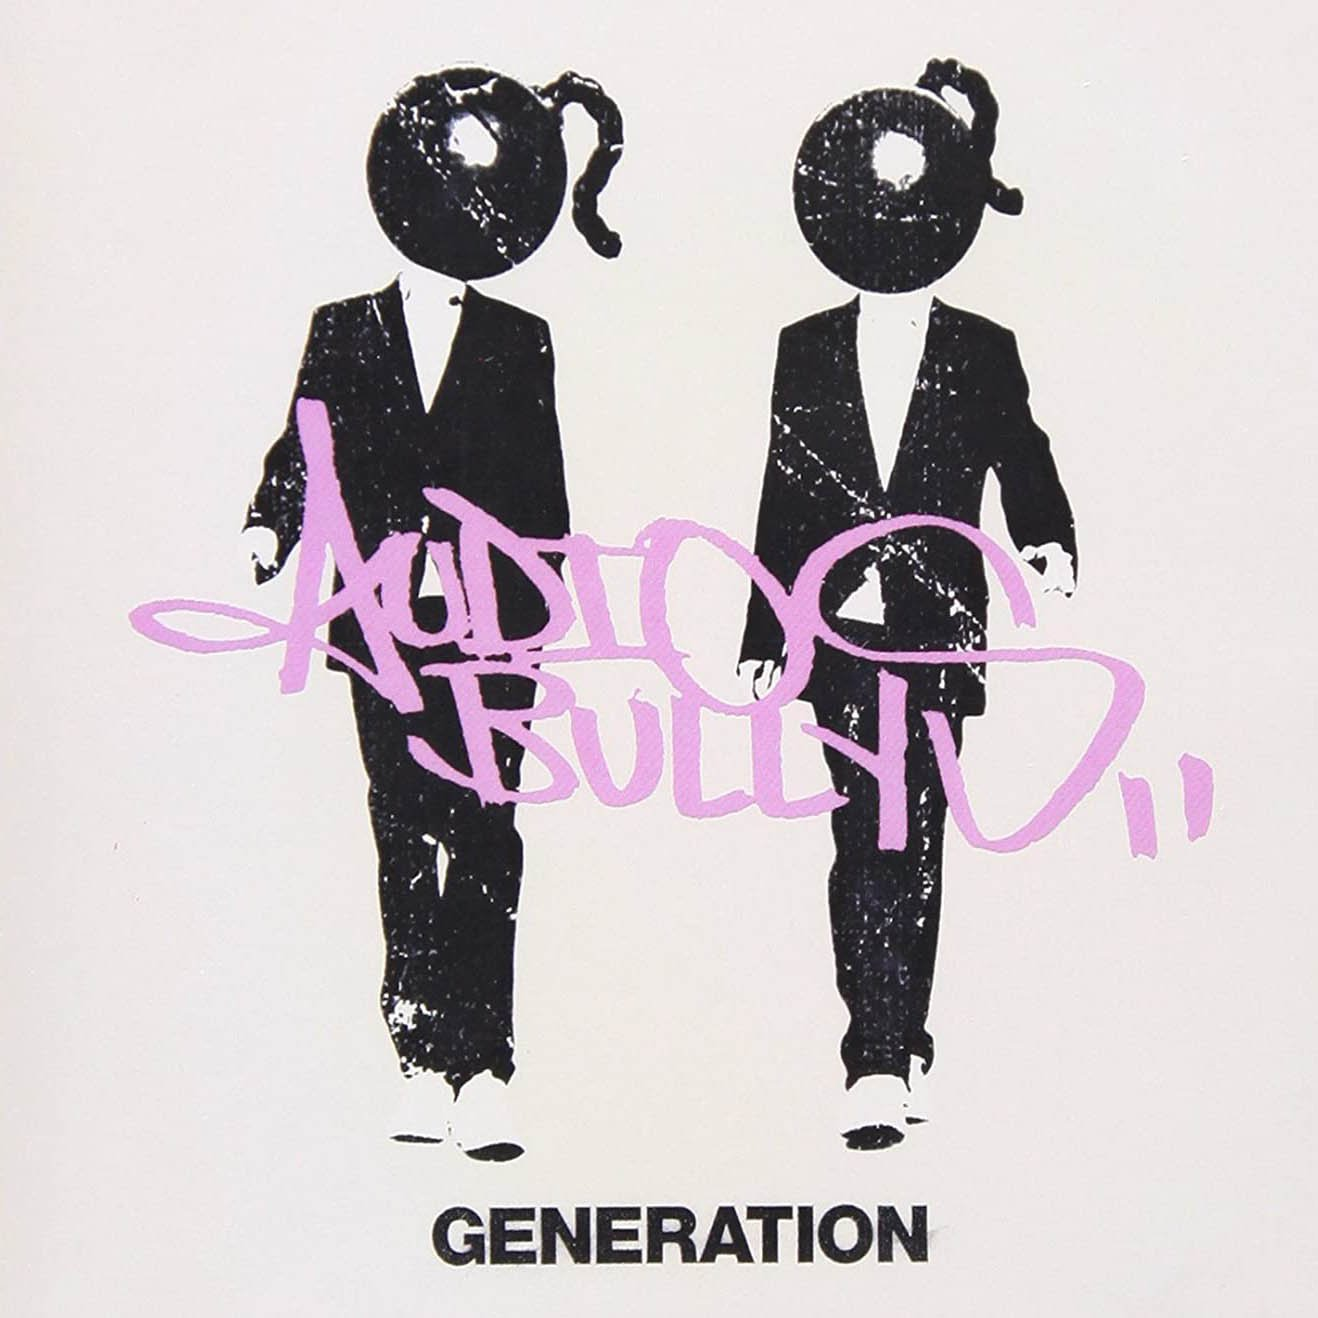 Audio Bullys, Generation